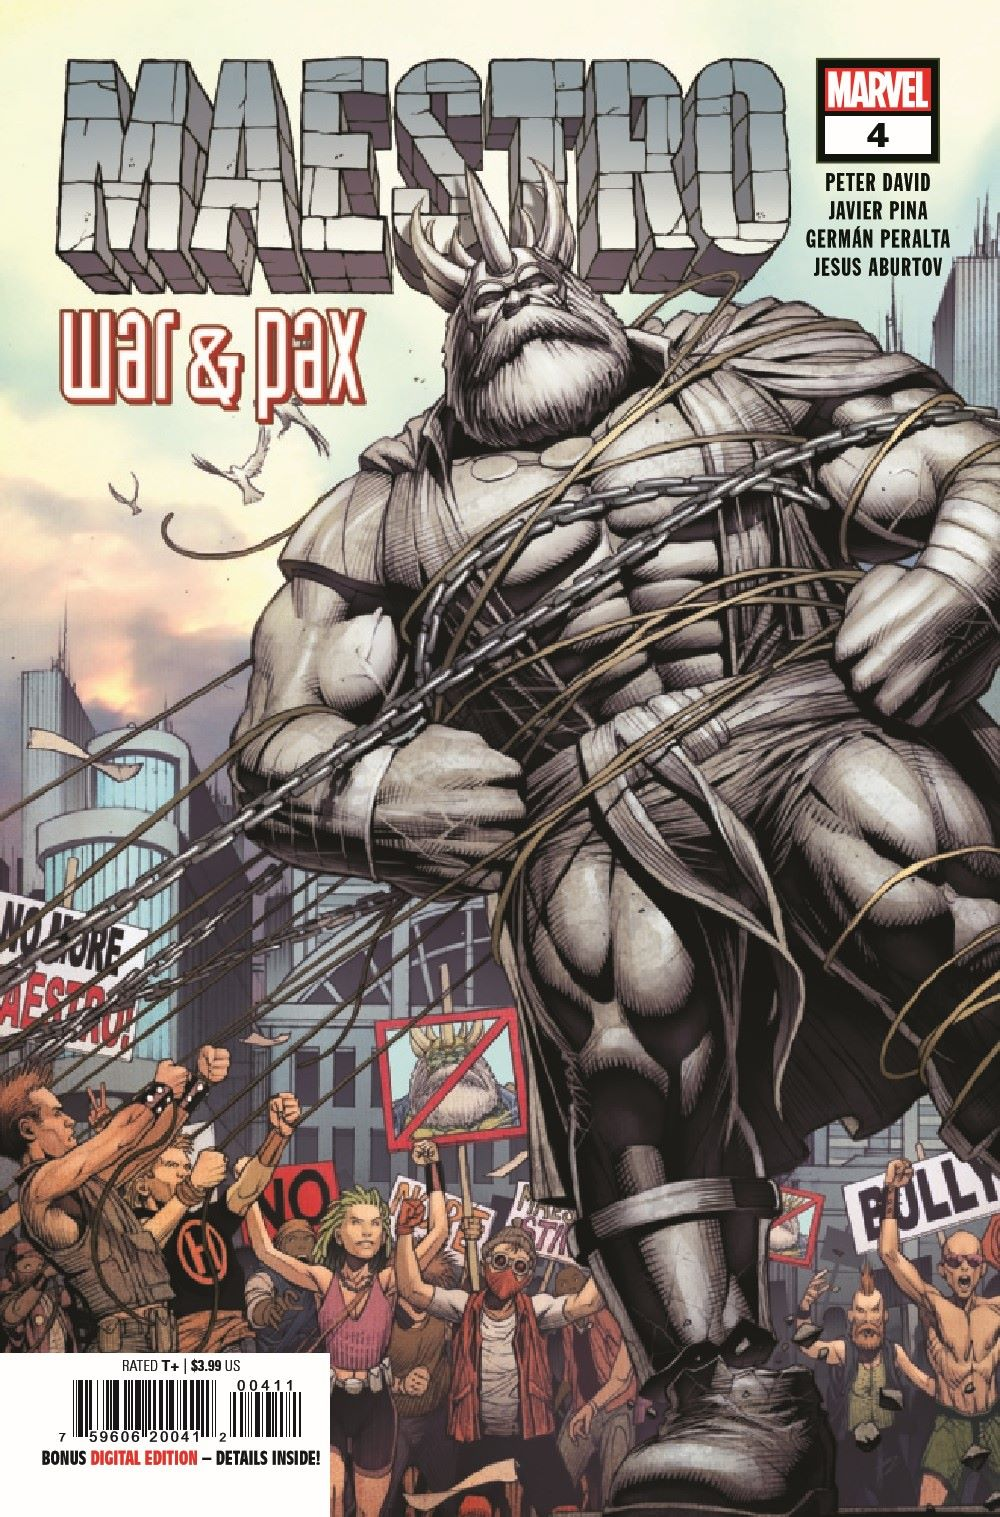 MAESTROWAP2021004_Preview-1 ComicList Previews: MAESTRO WAR AND PAX #4 (OF 5)